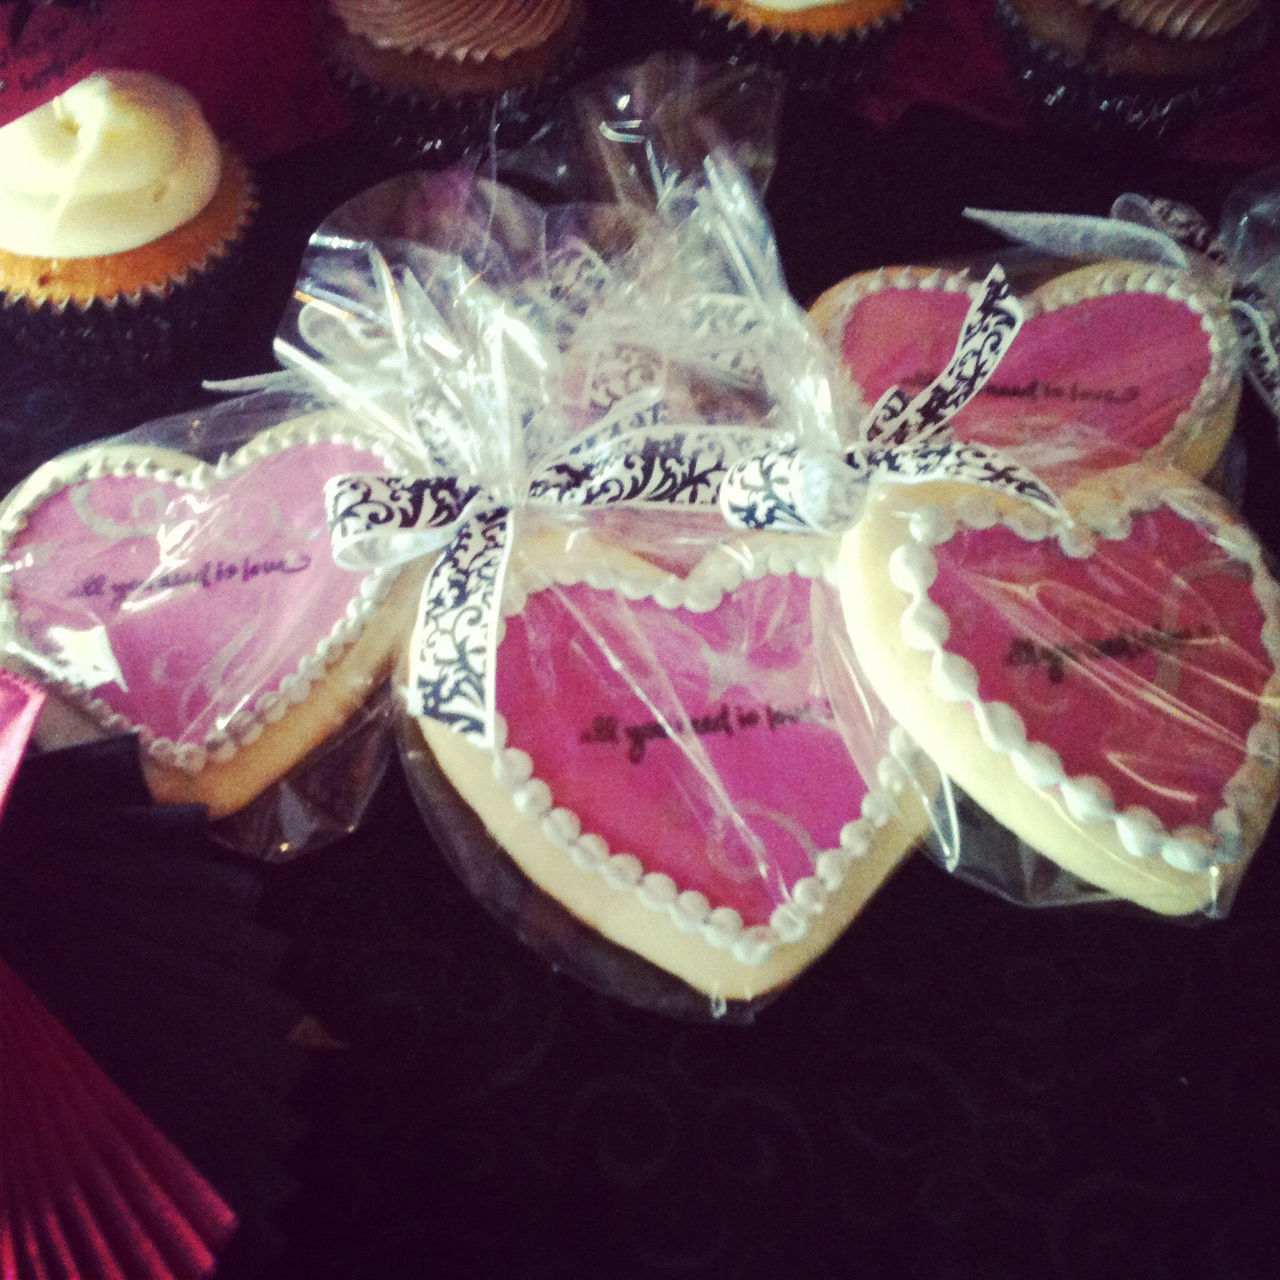 Rantings of a Stay At Home Mom: Bridal shower favors and cupcakes